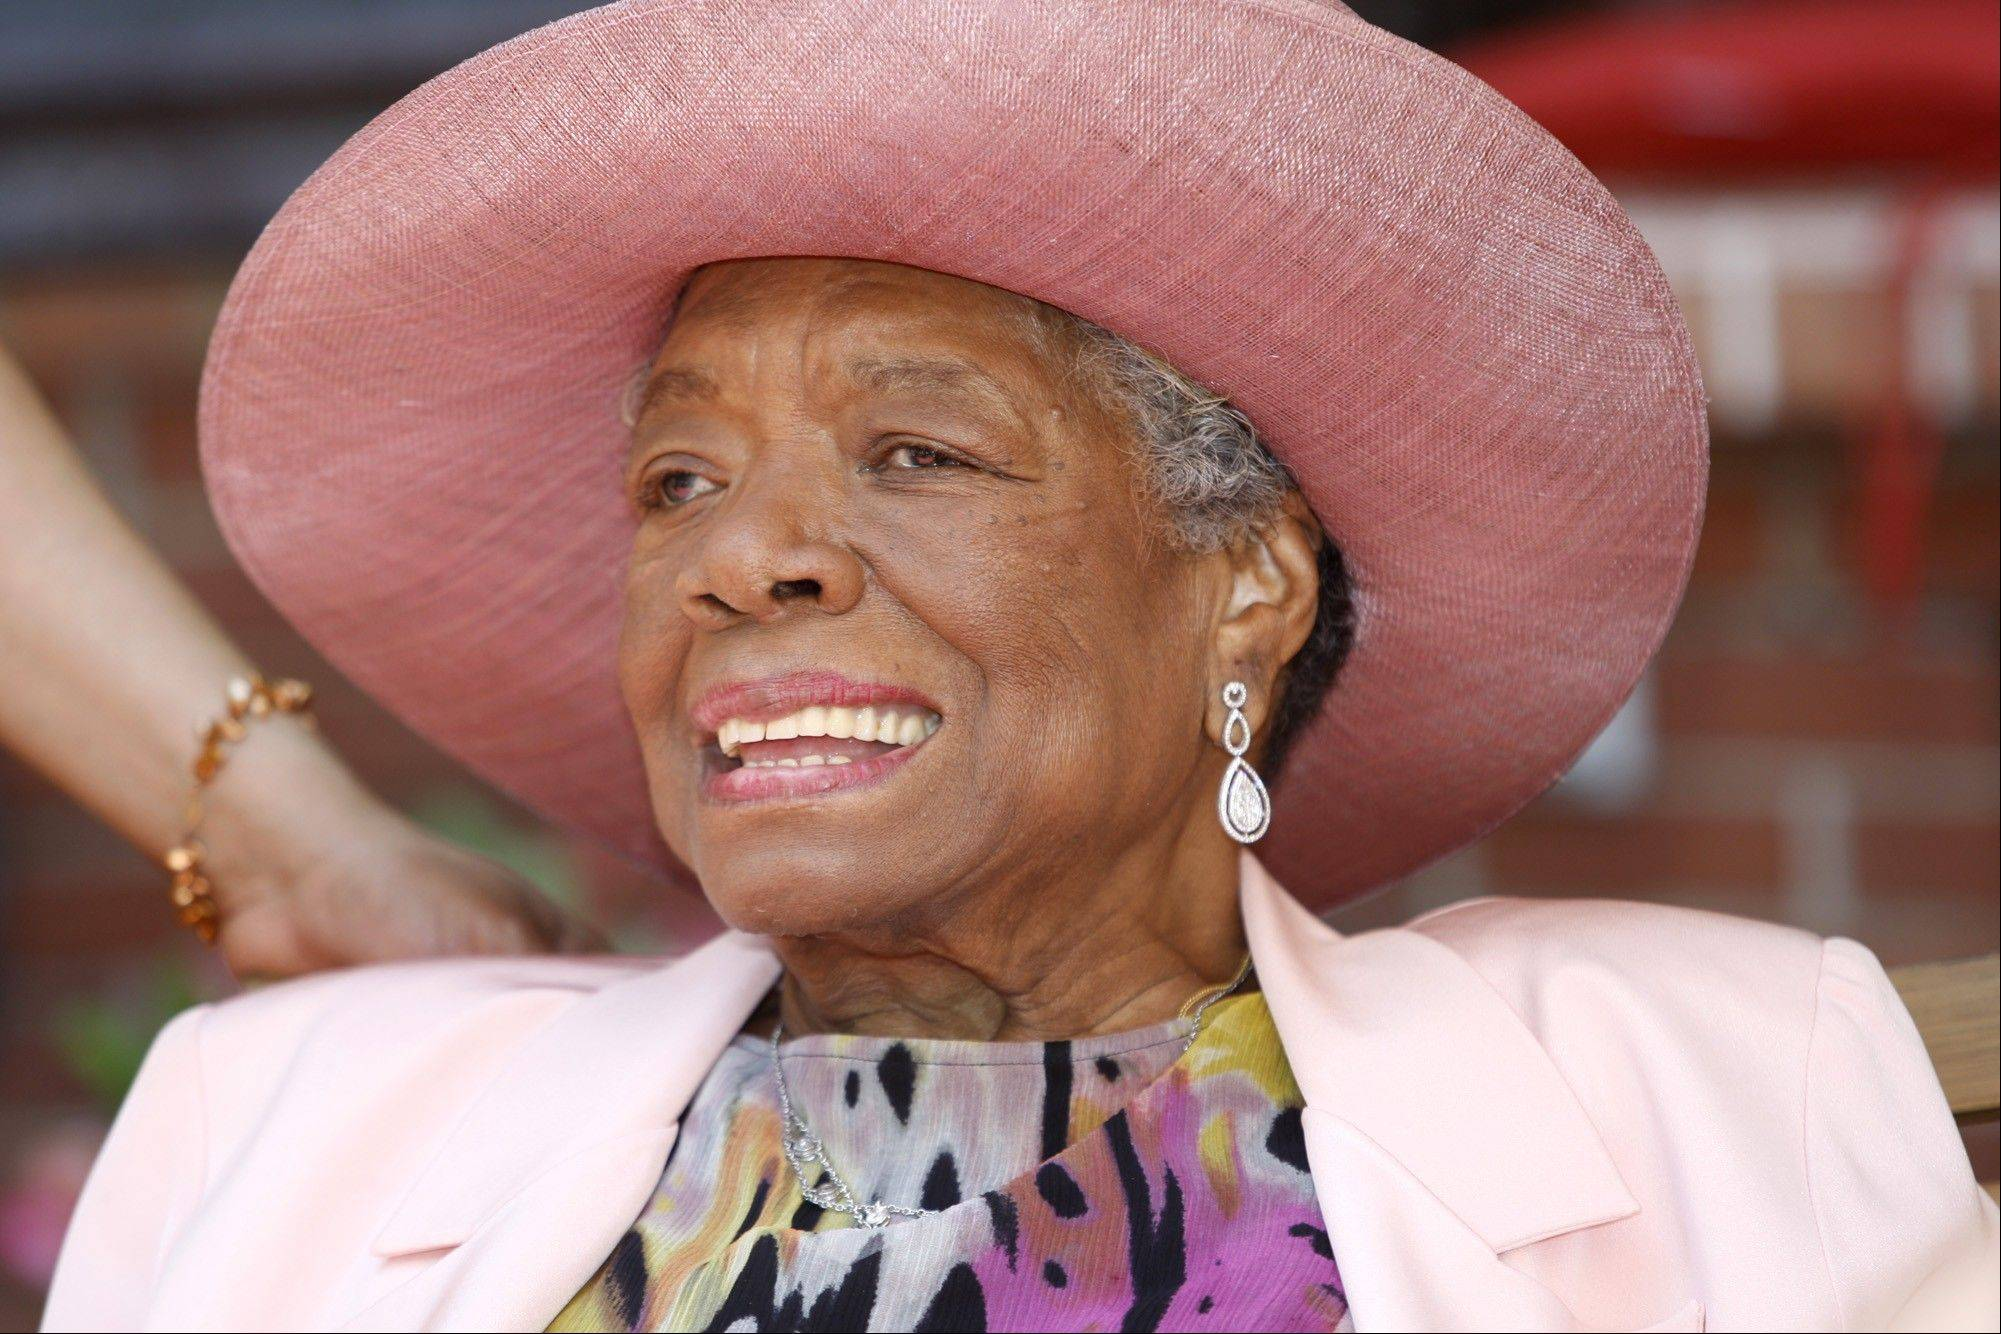 The National Book Foundation announced Thursday that Maya Angelou, author of �I Know Why the Caged Bird Sings,� will be this year�s recipient of the Literarian Award, an honorary National Book Award for contributions to the literary community.